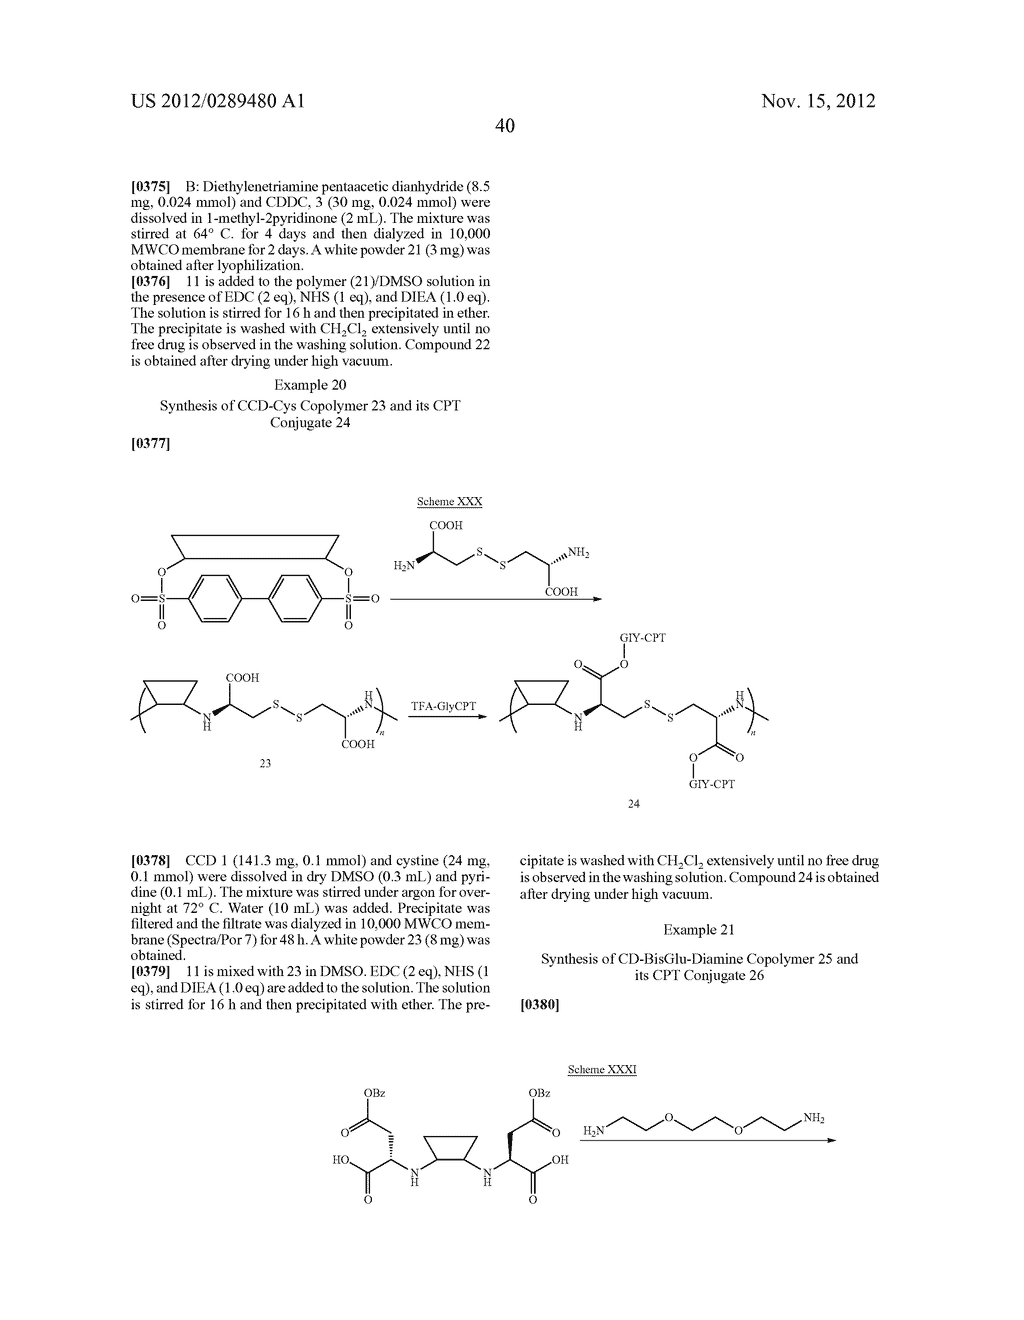 CYCLODEXTRIN-BASED POLYMERS FOR THERAPEUTICS DELIVERY - diagram, schematic, and image 52